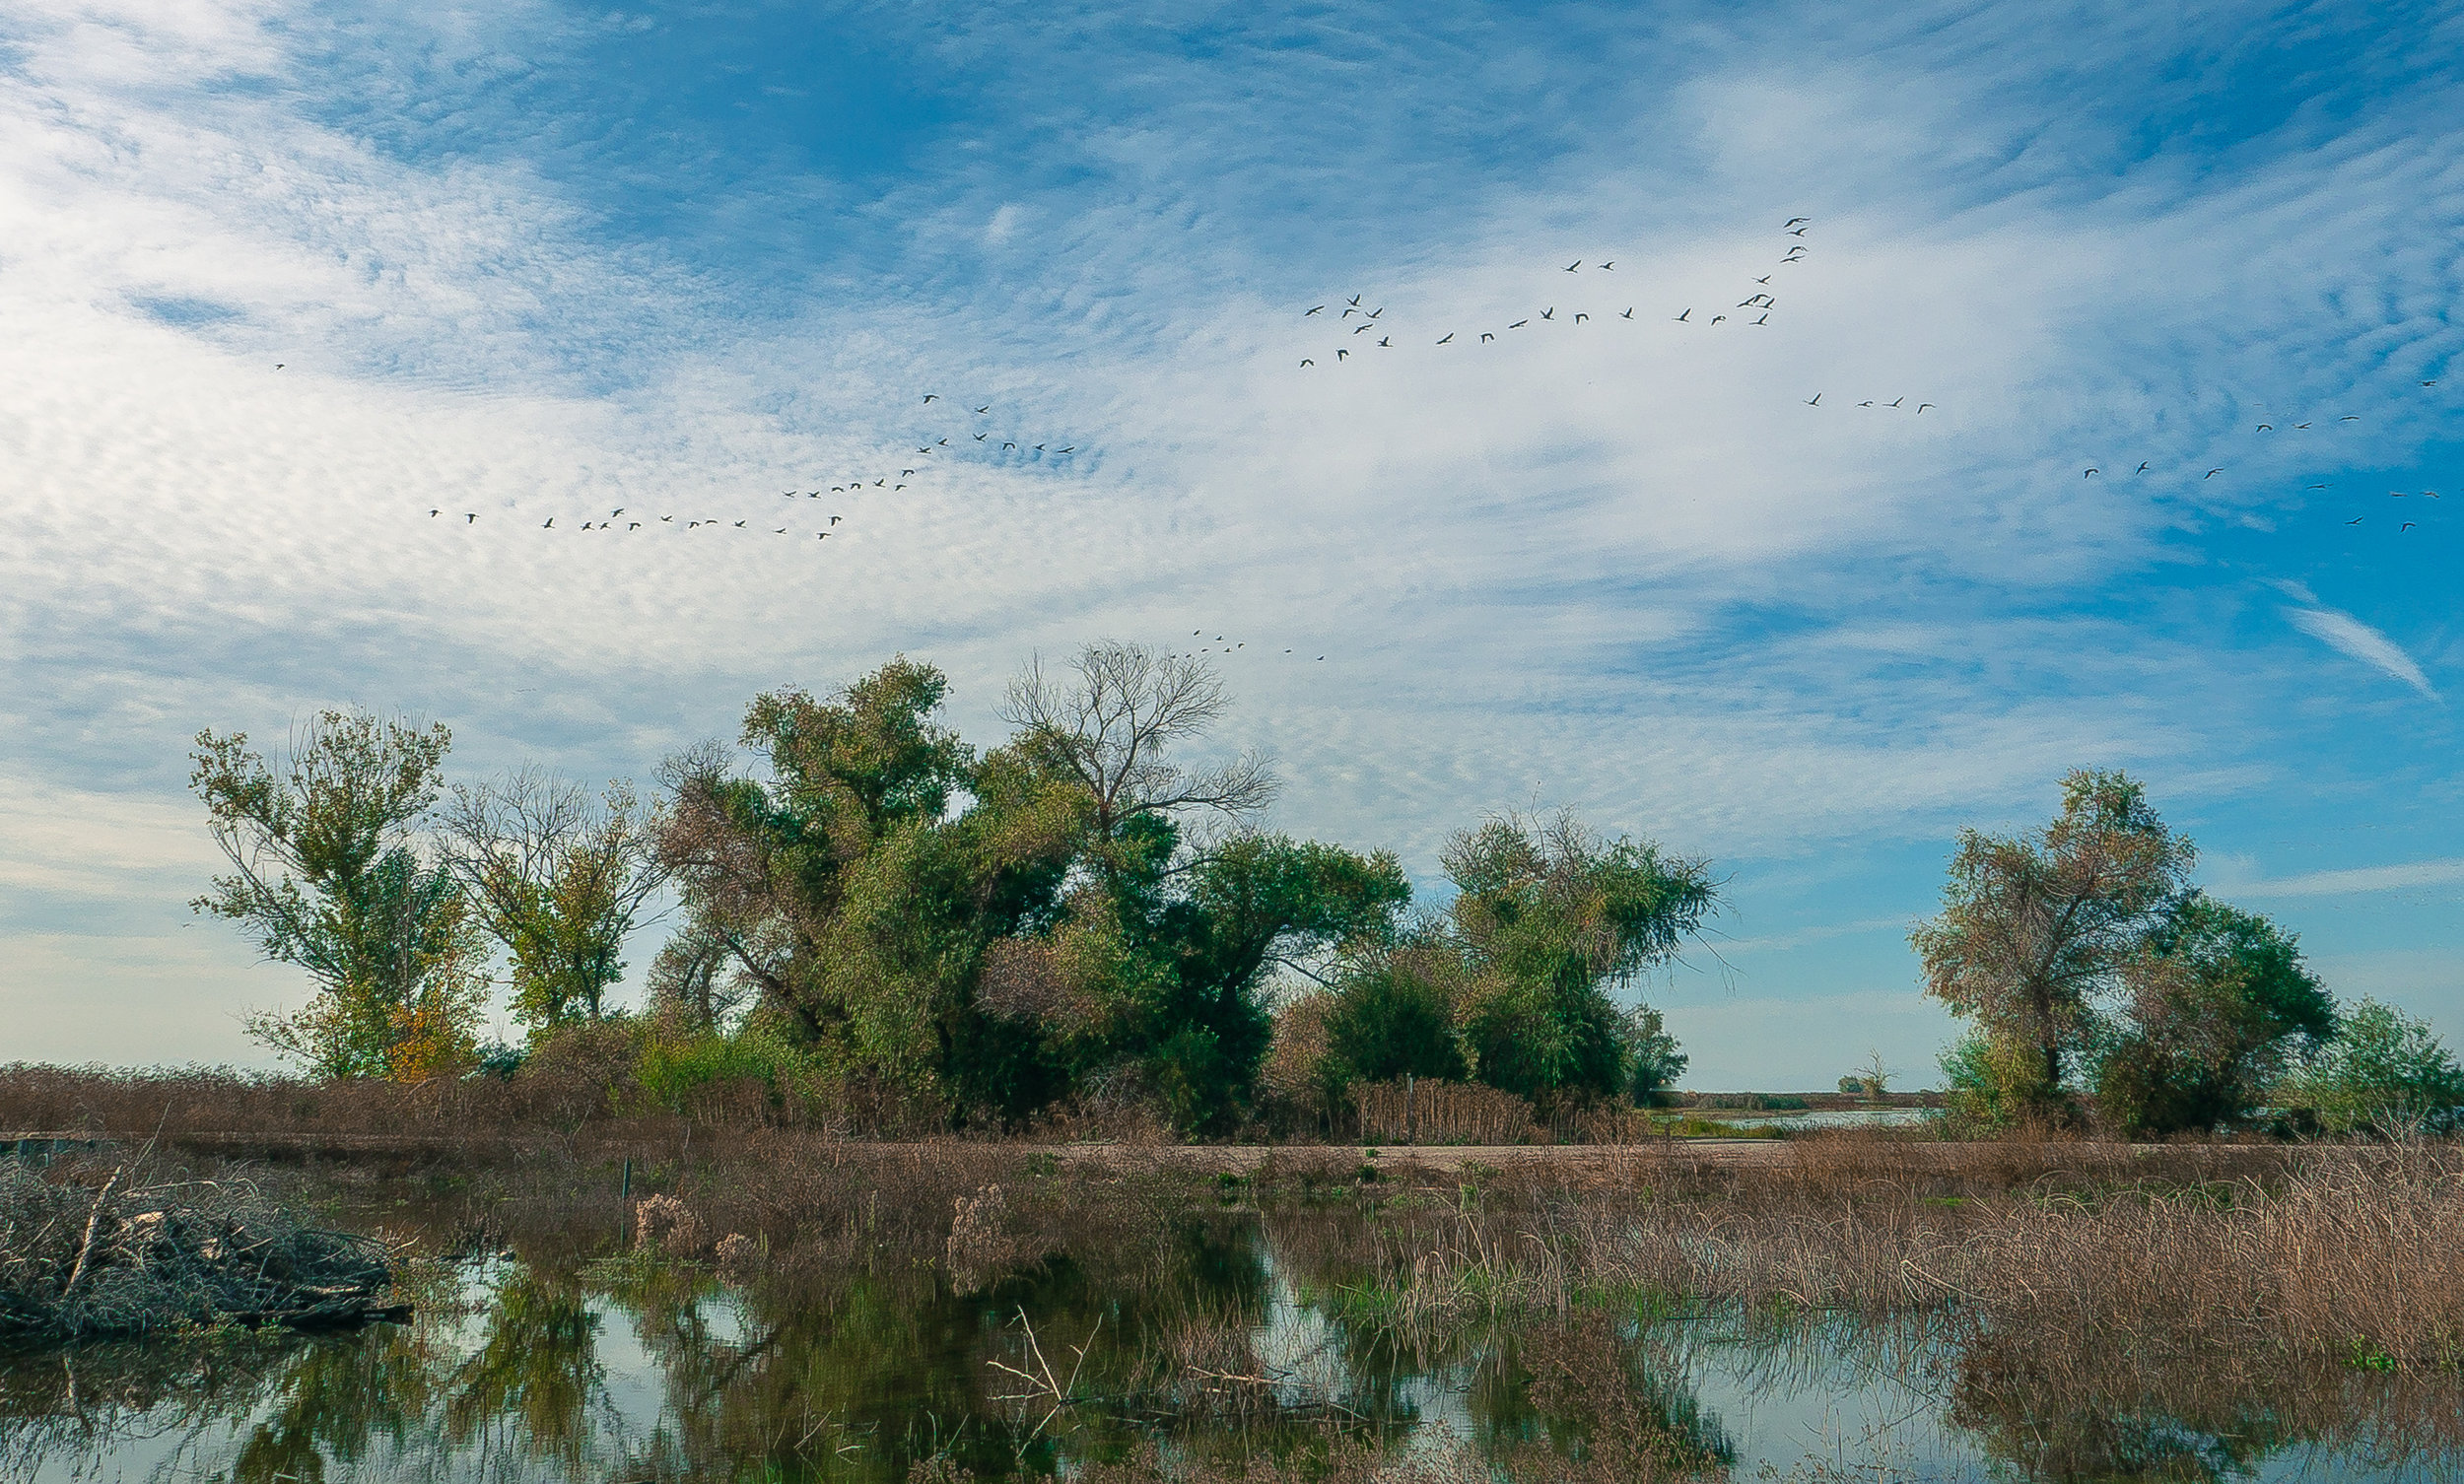 Sandhill cranes take flight over the Merced National Wildlife Refuge.